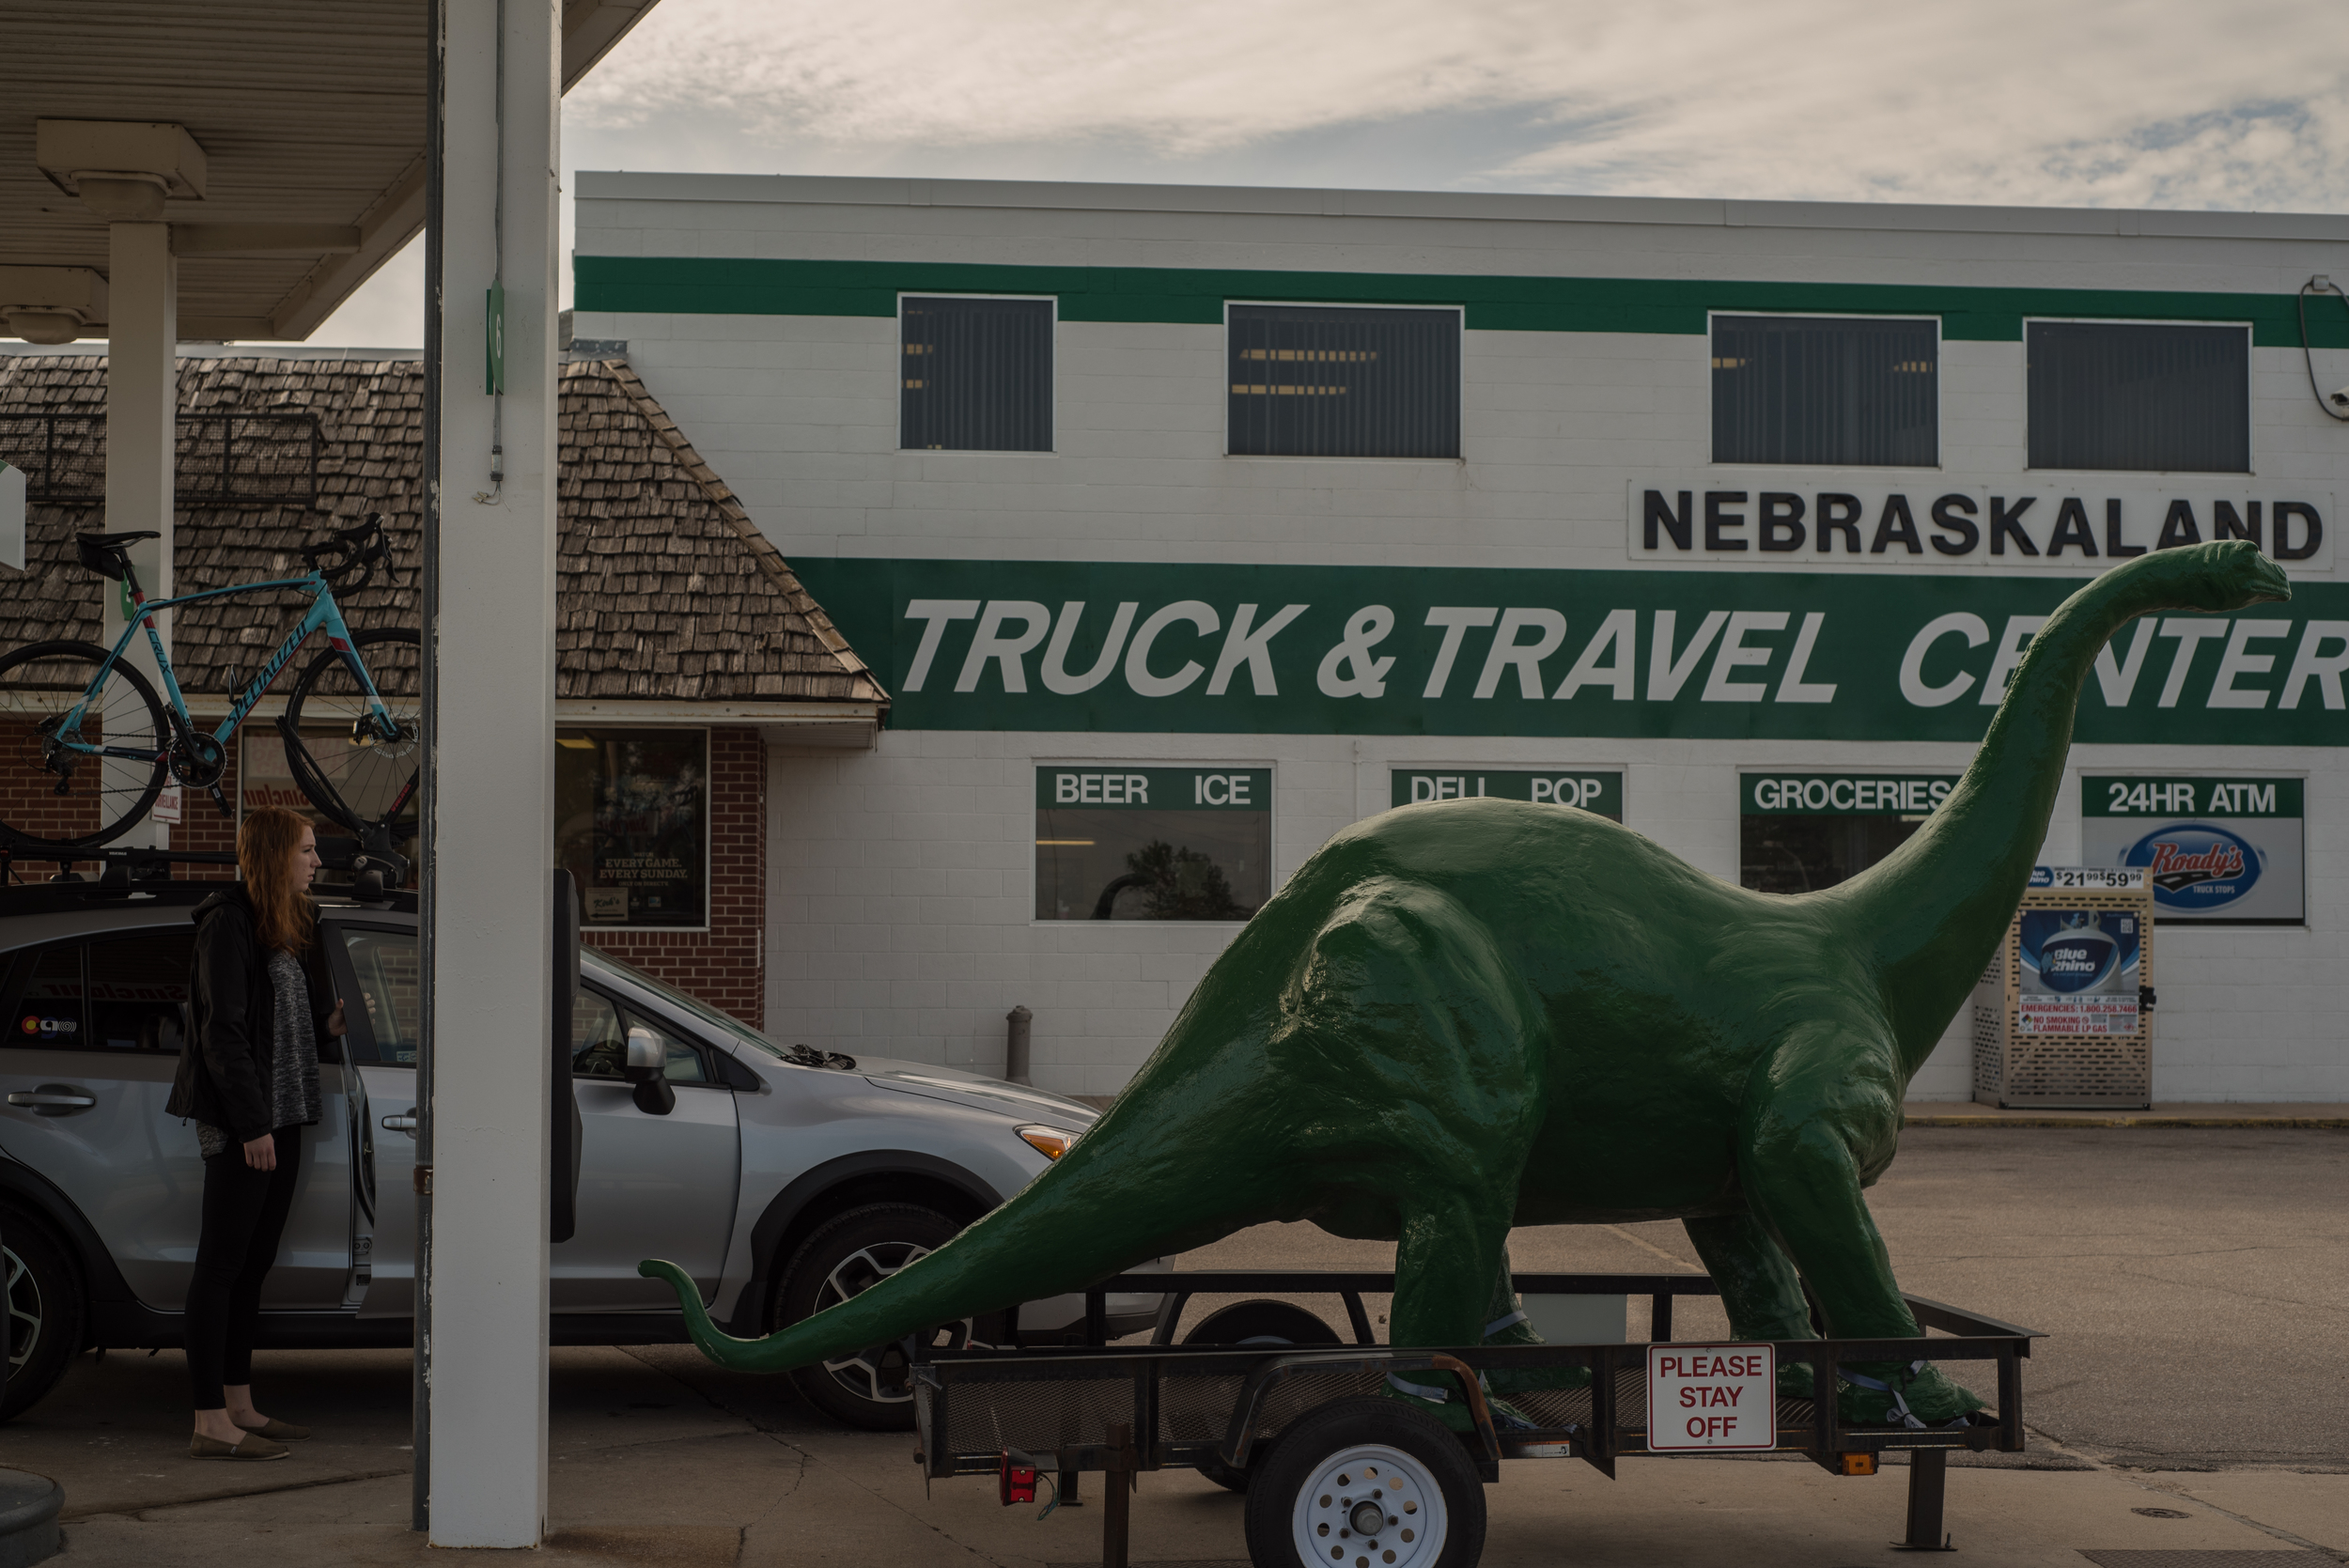 Stopping for gas in Lexington, Nebraska.